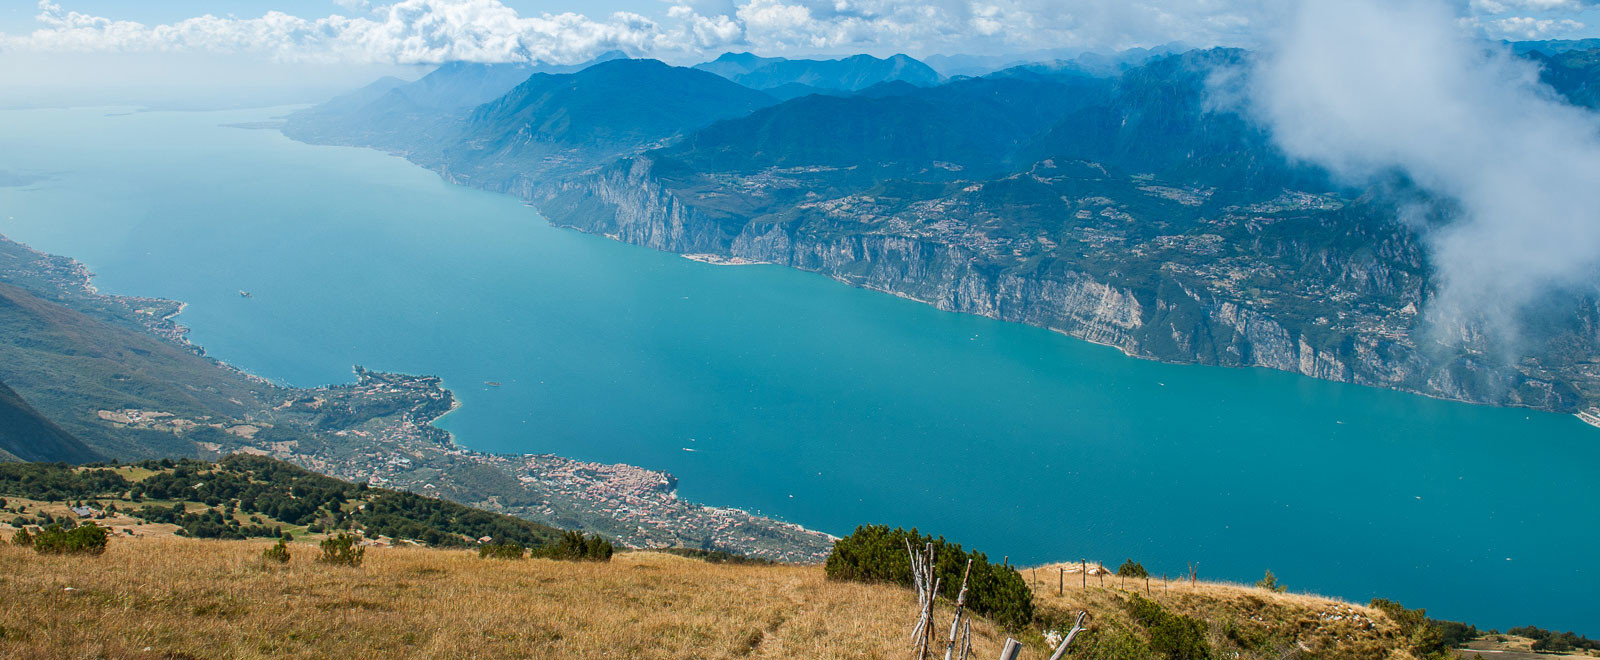 lake garda from monte baldo